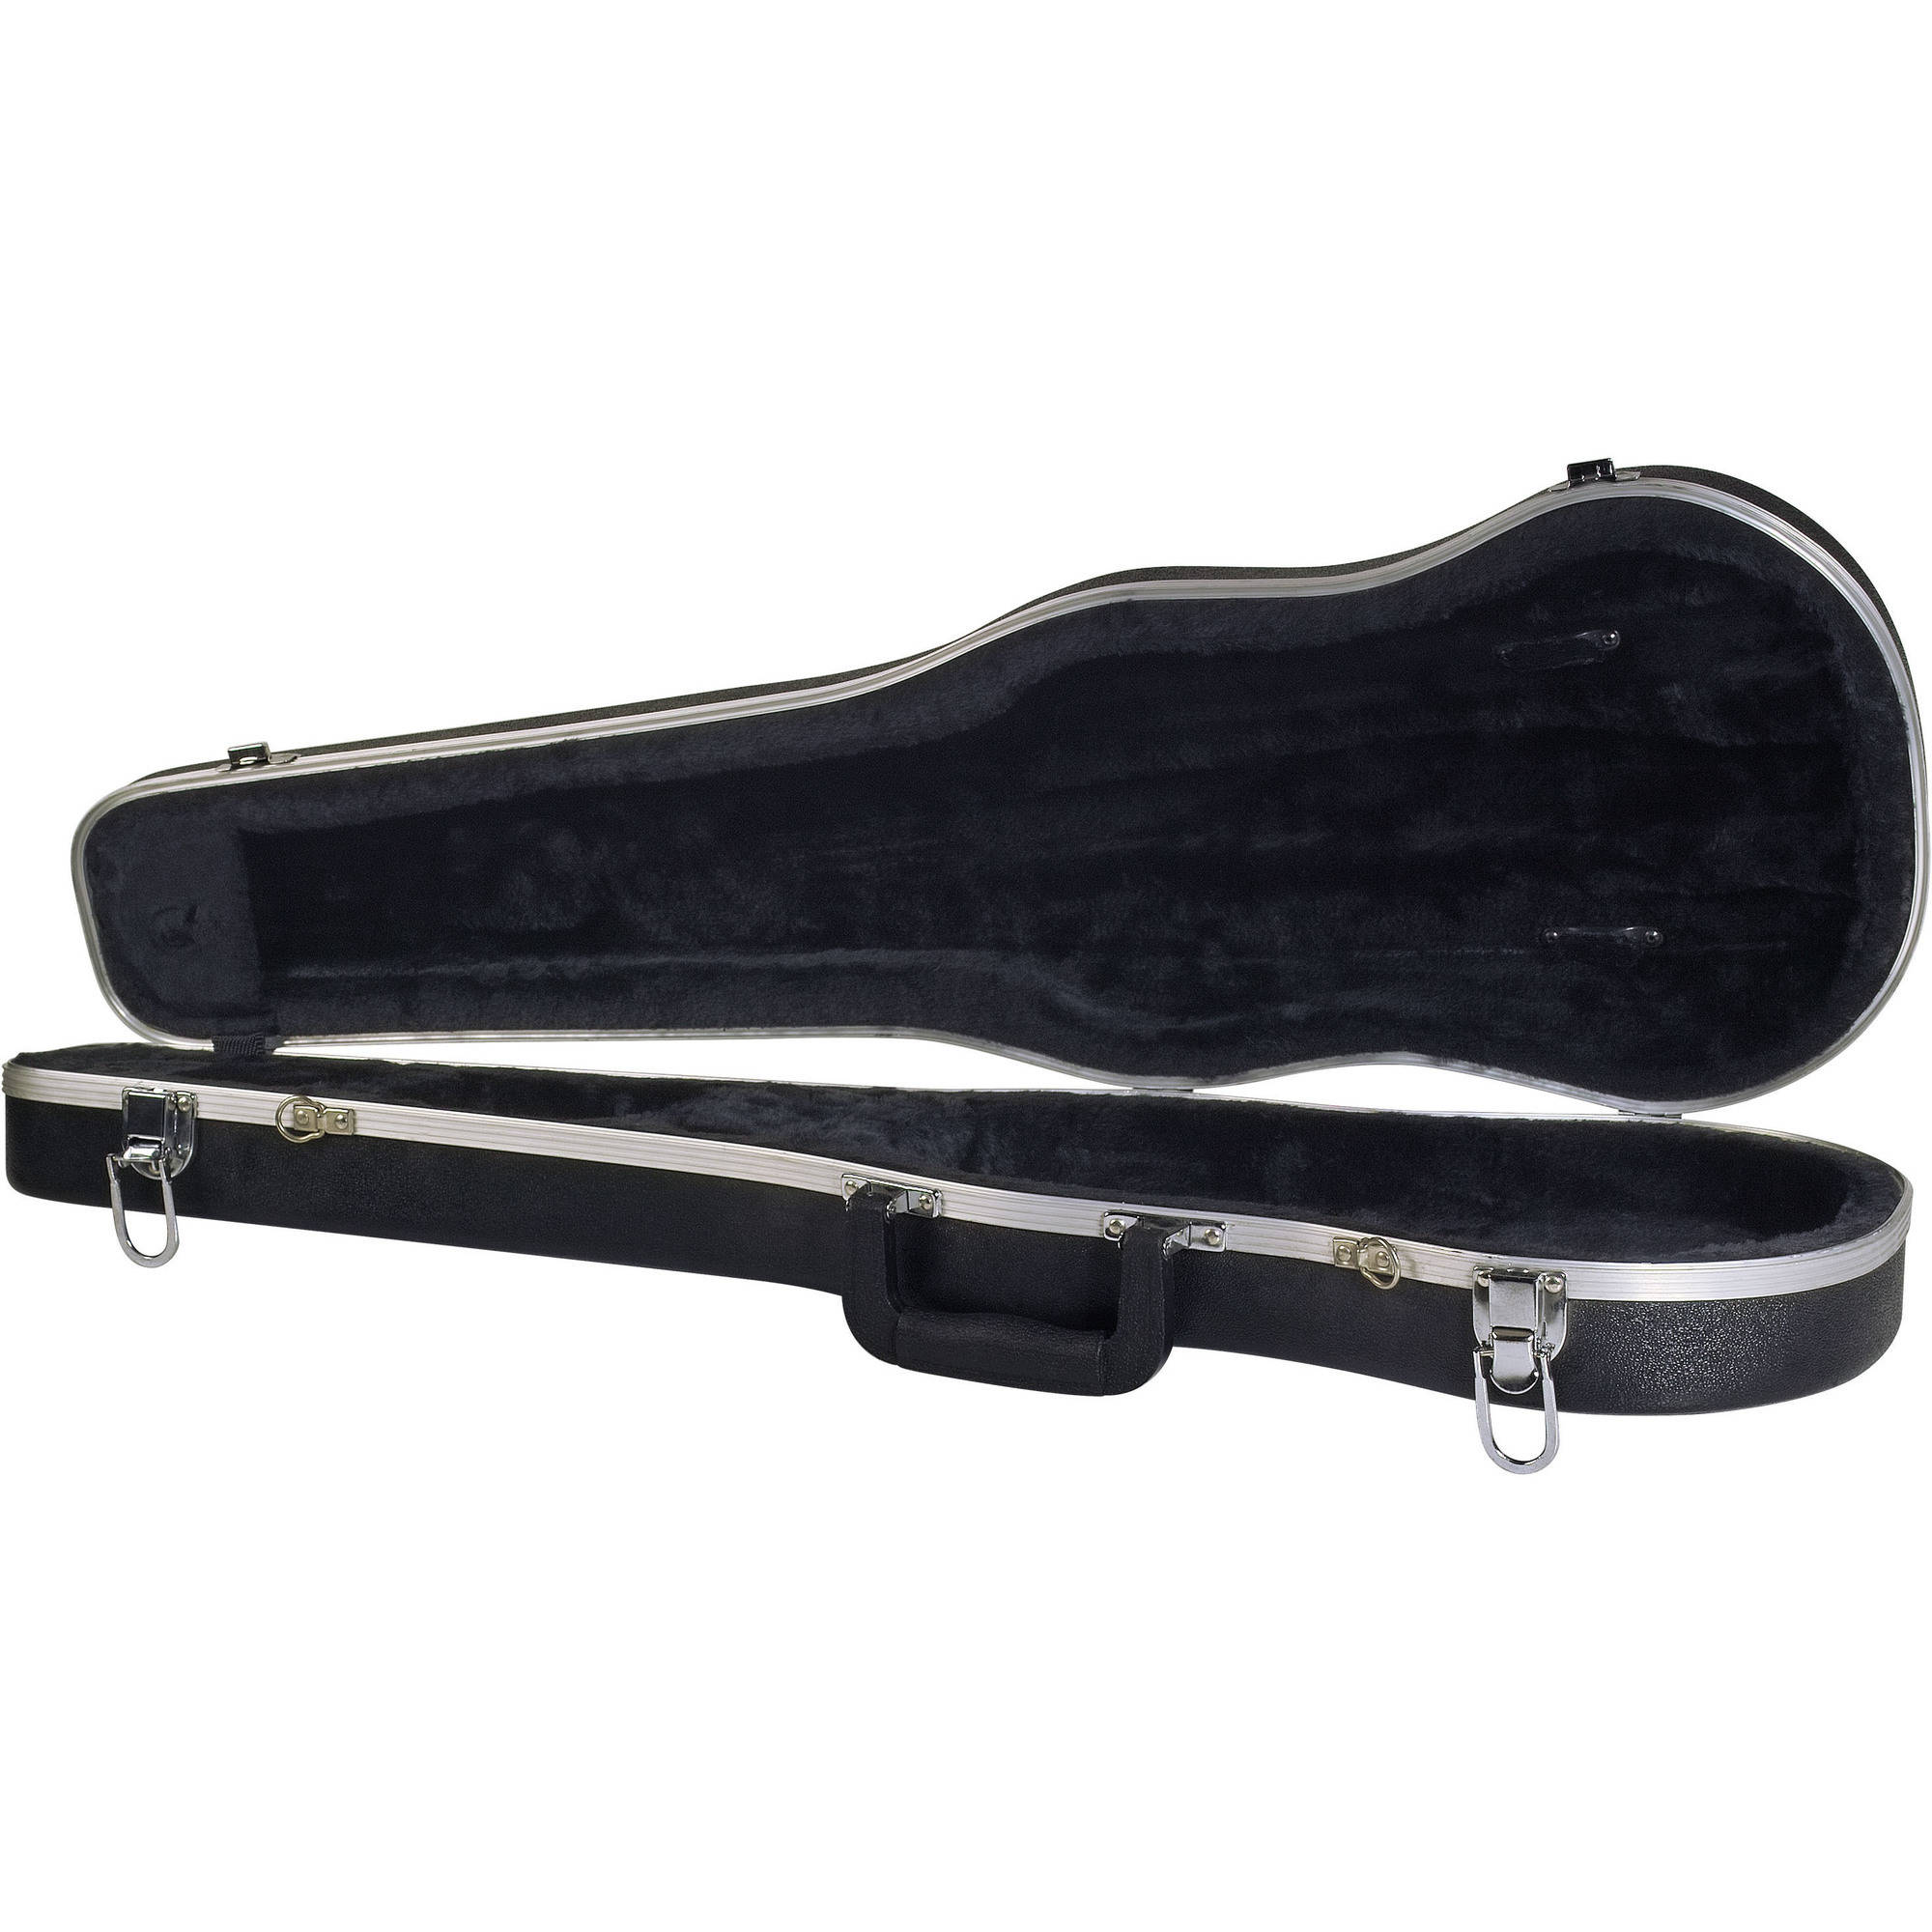 Golden Gate CP-3901 Violin Case, Shaped, 4/4 Size